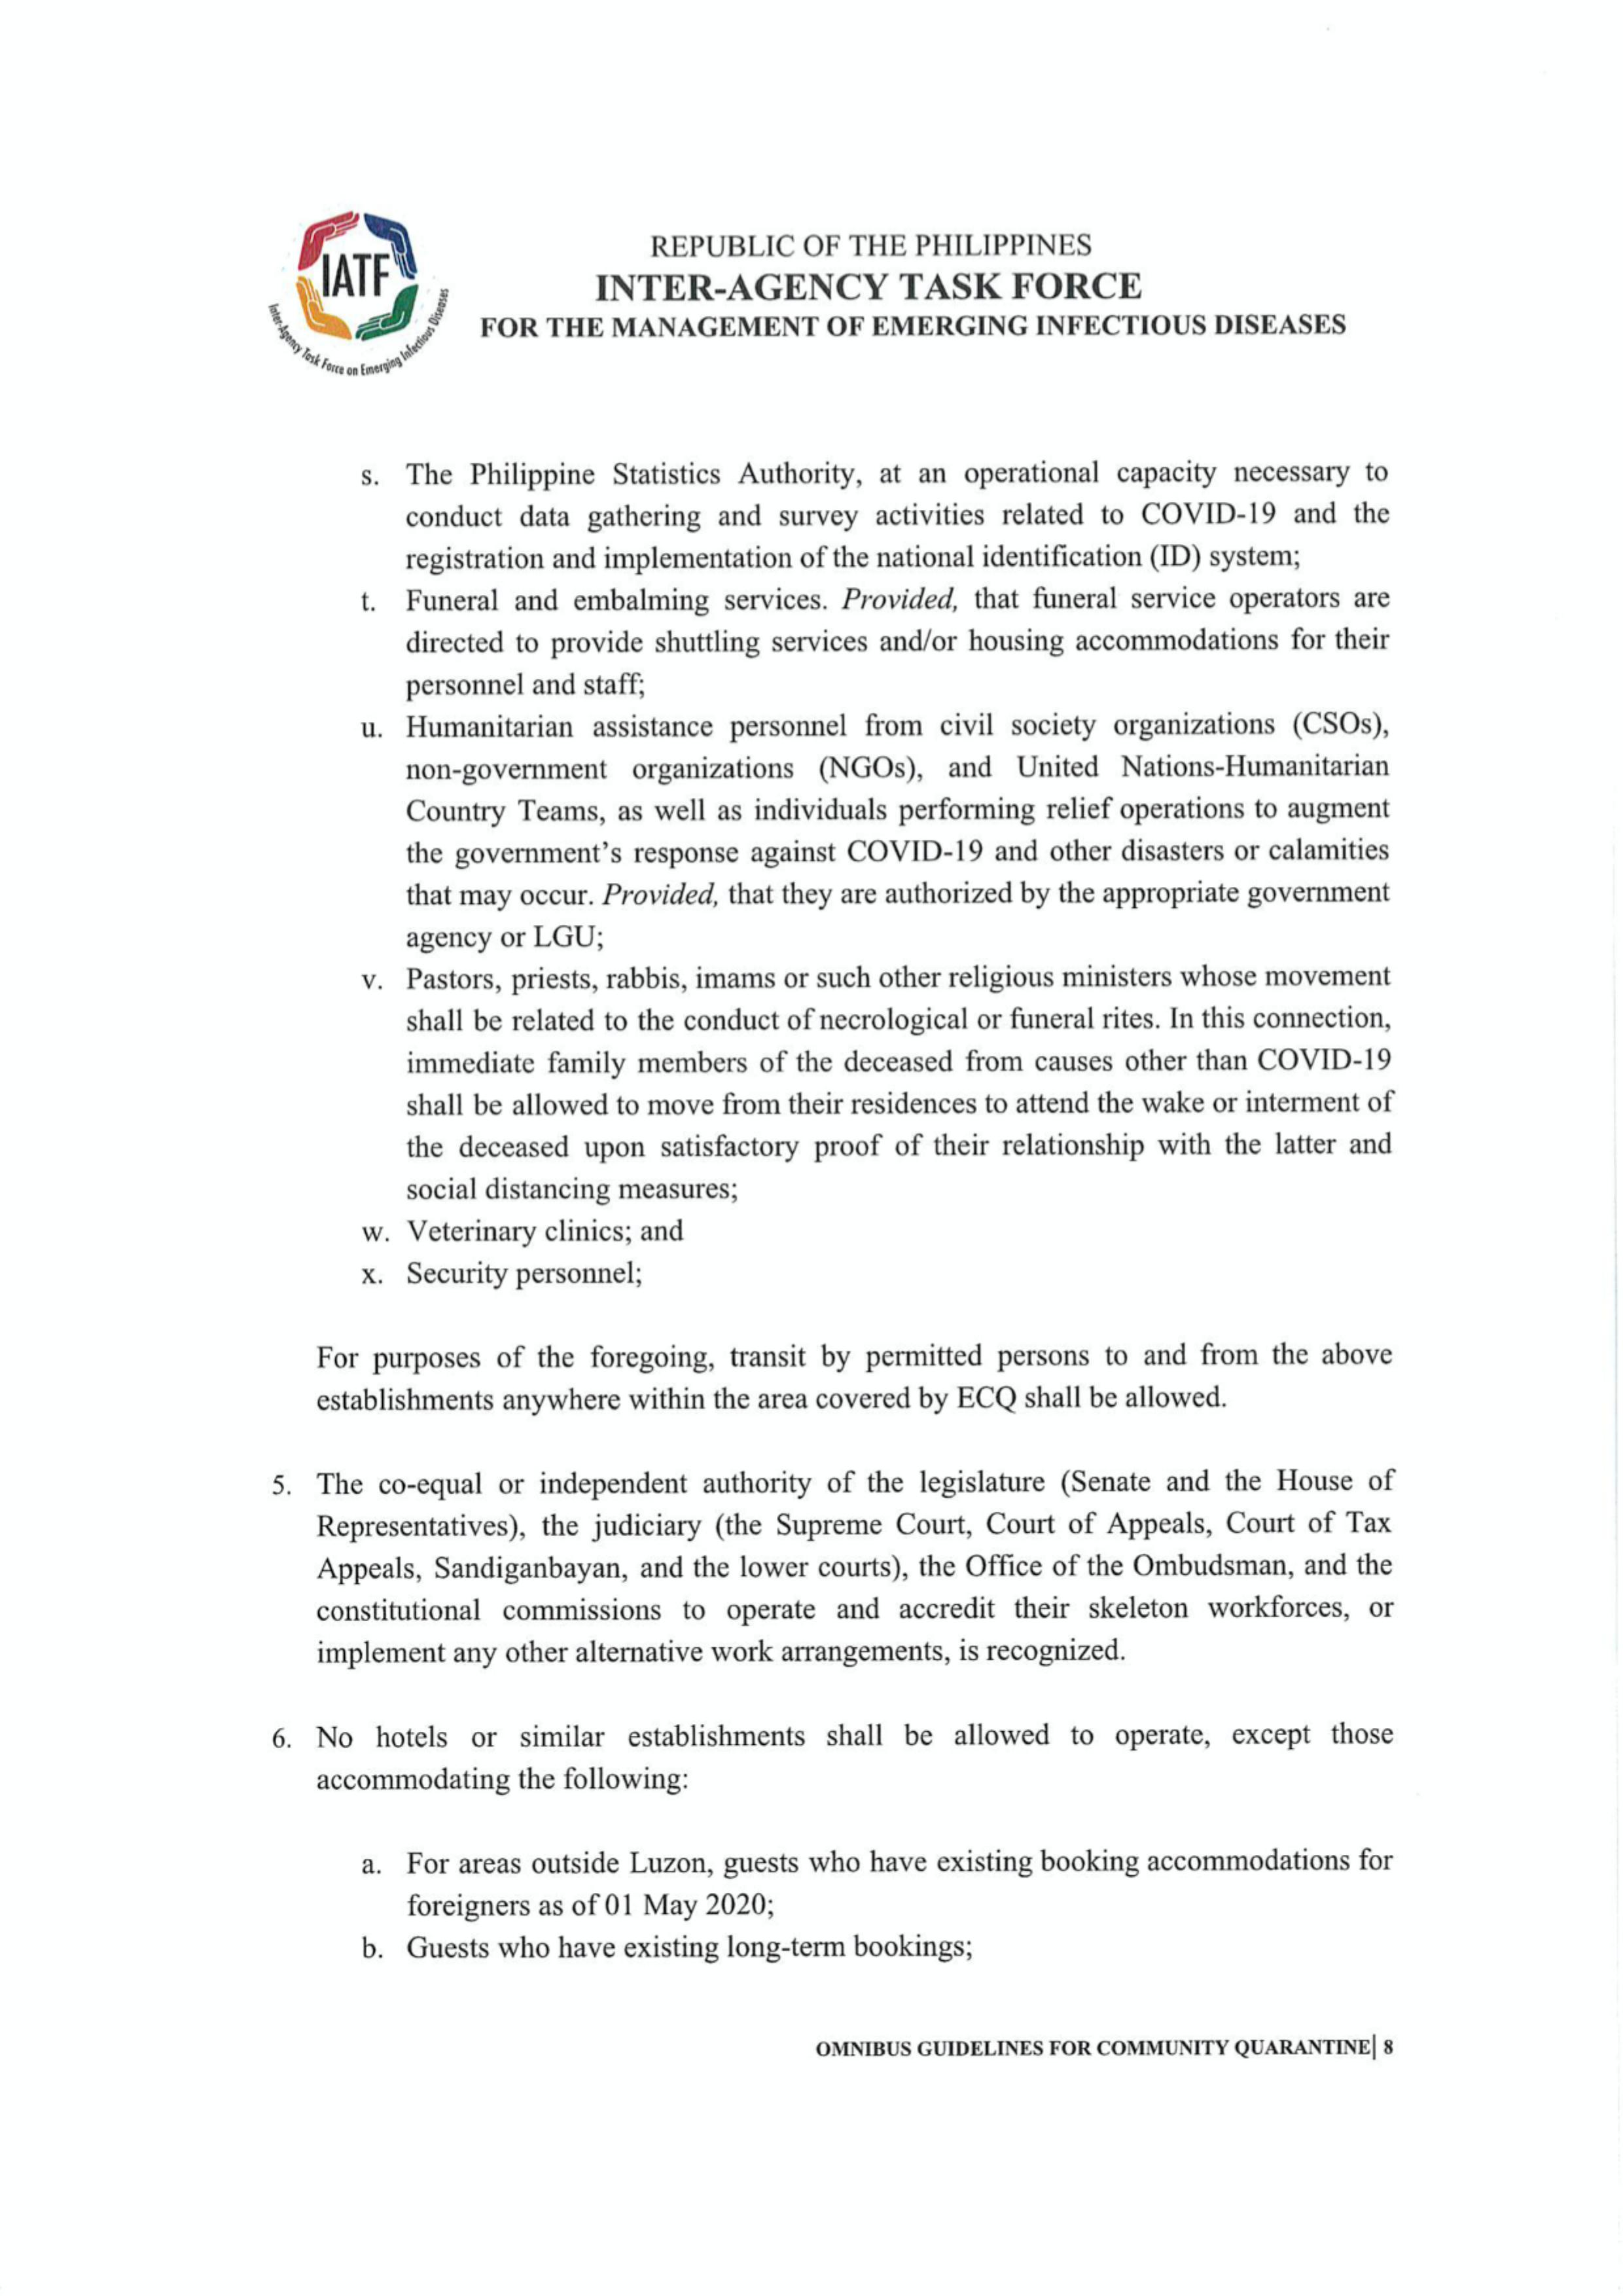 Omnibus Guidelines on the Implementation of Community Quarantine in the Philippines